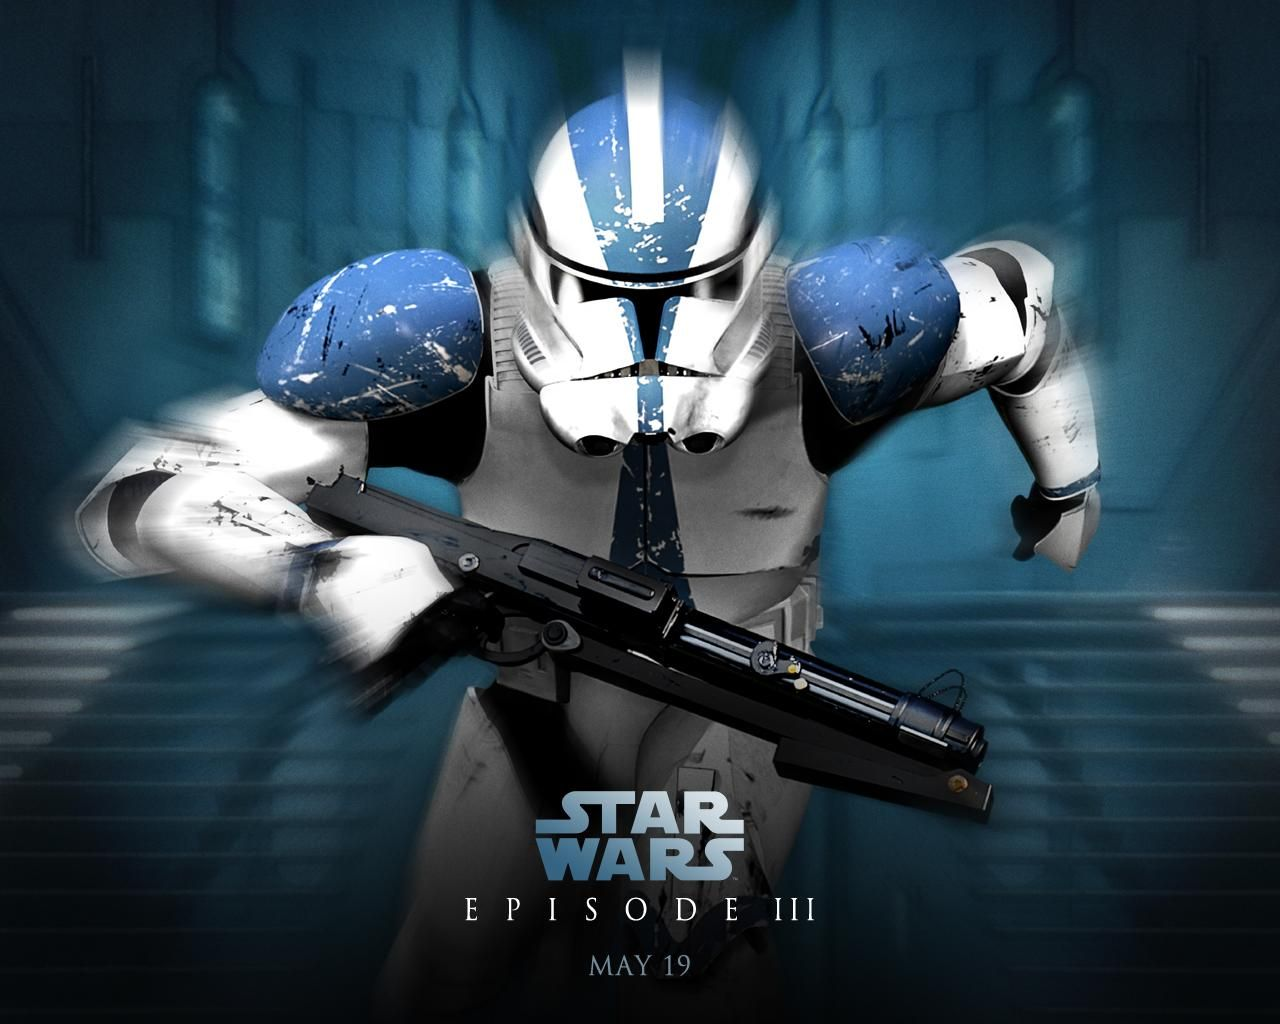 501st Legion Wallpaper 104 images in Collection Page 1 1280x1024